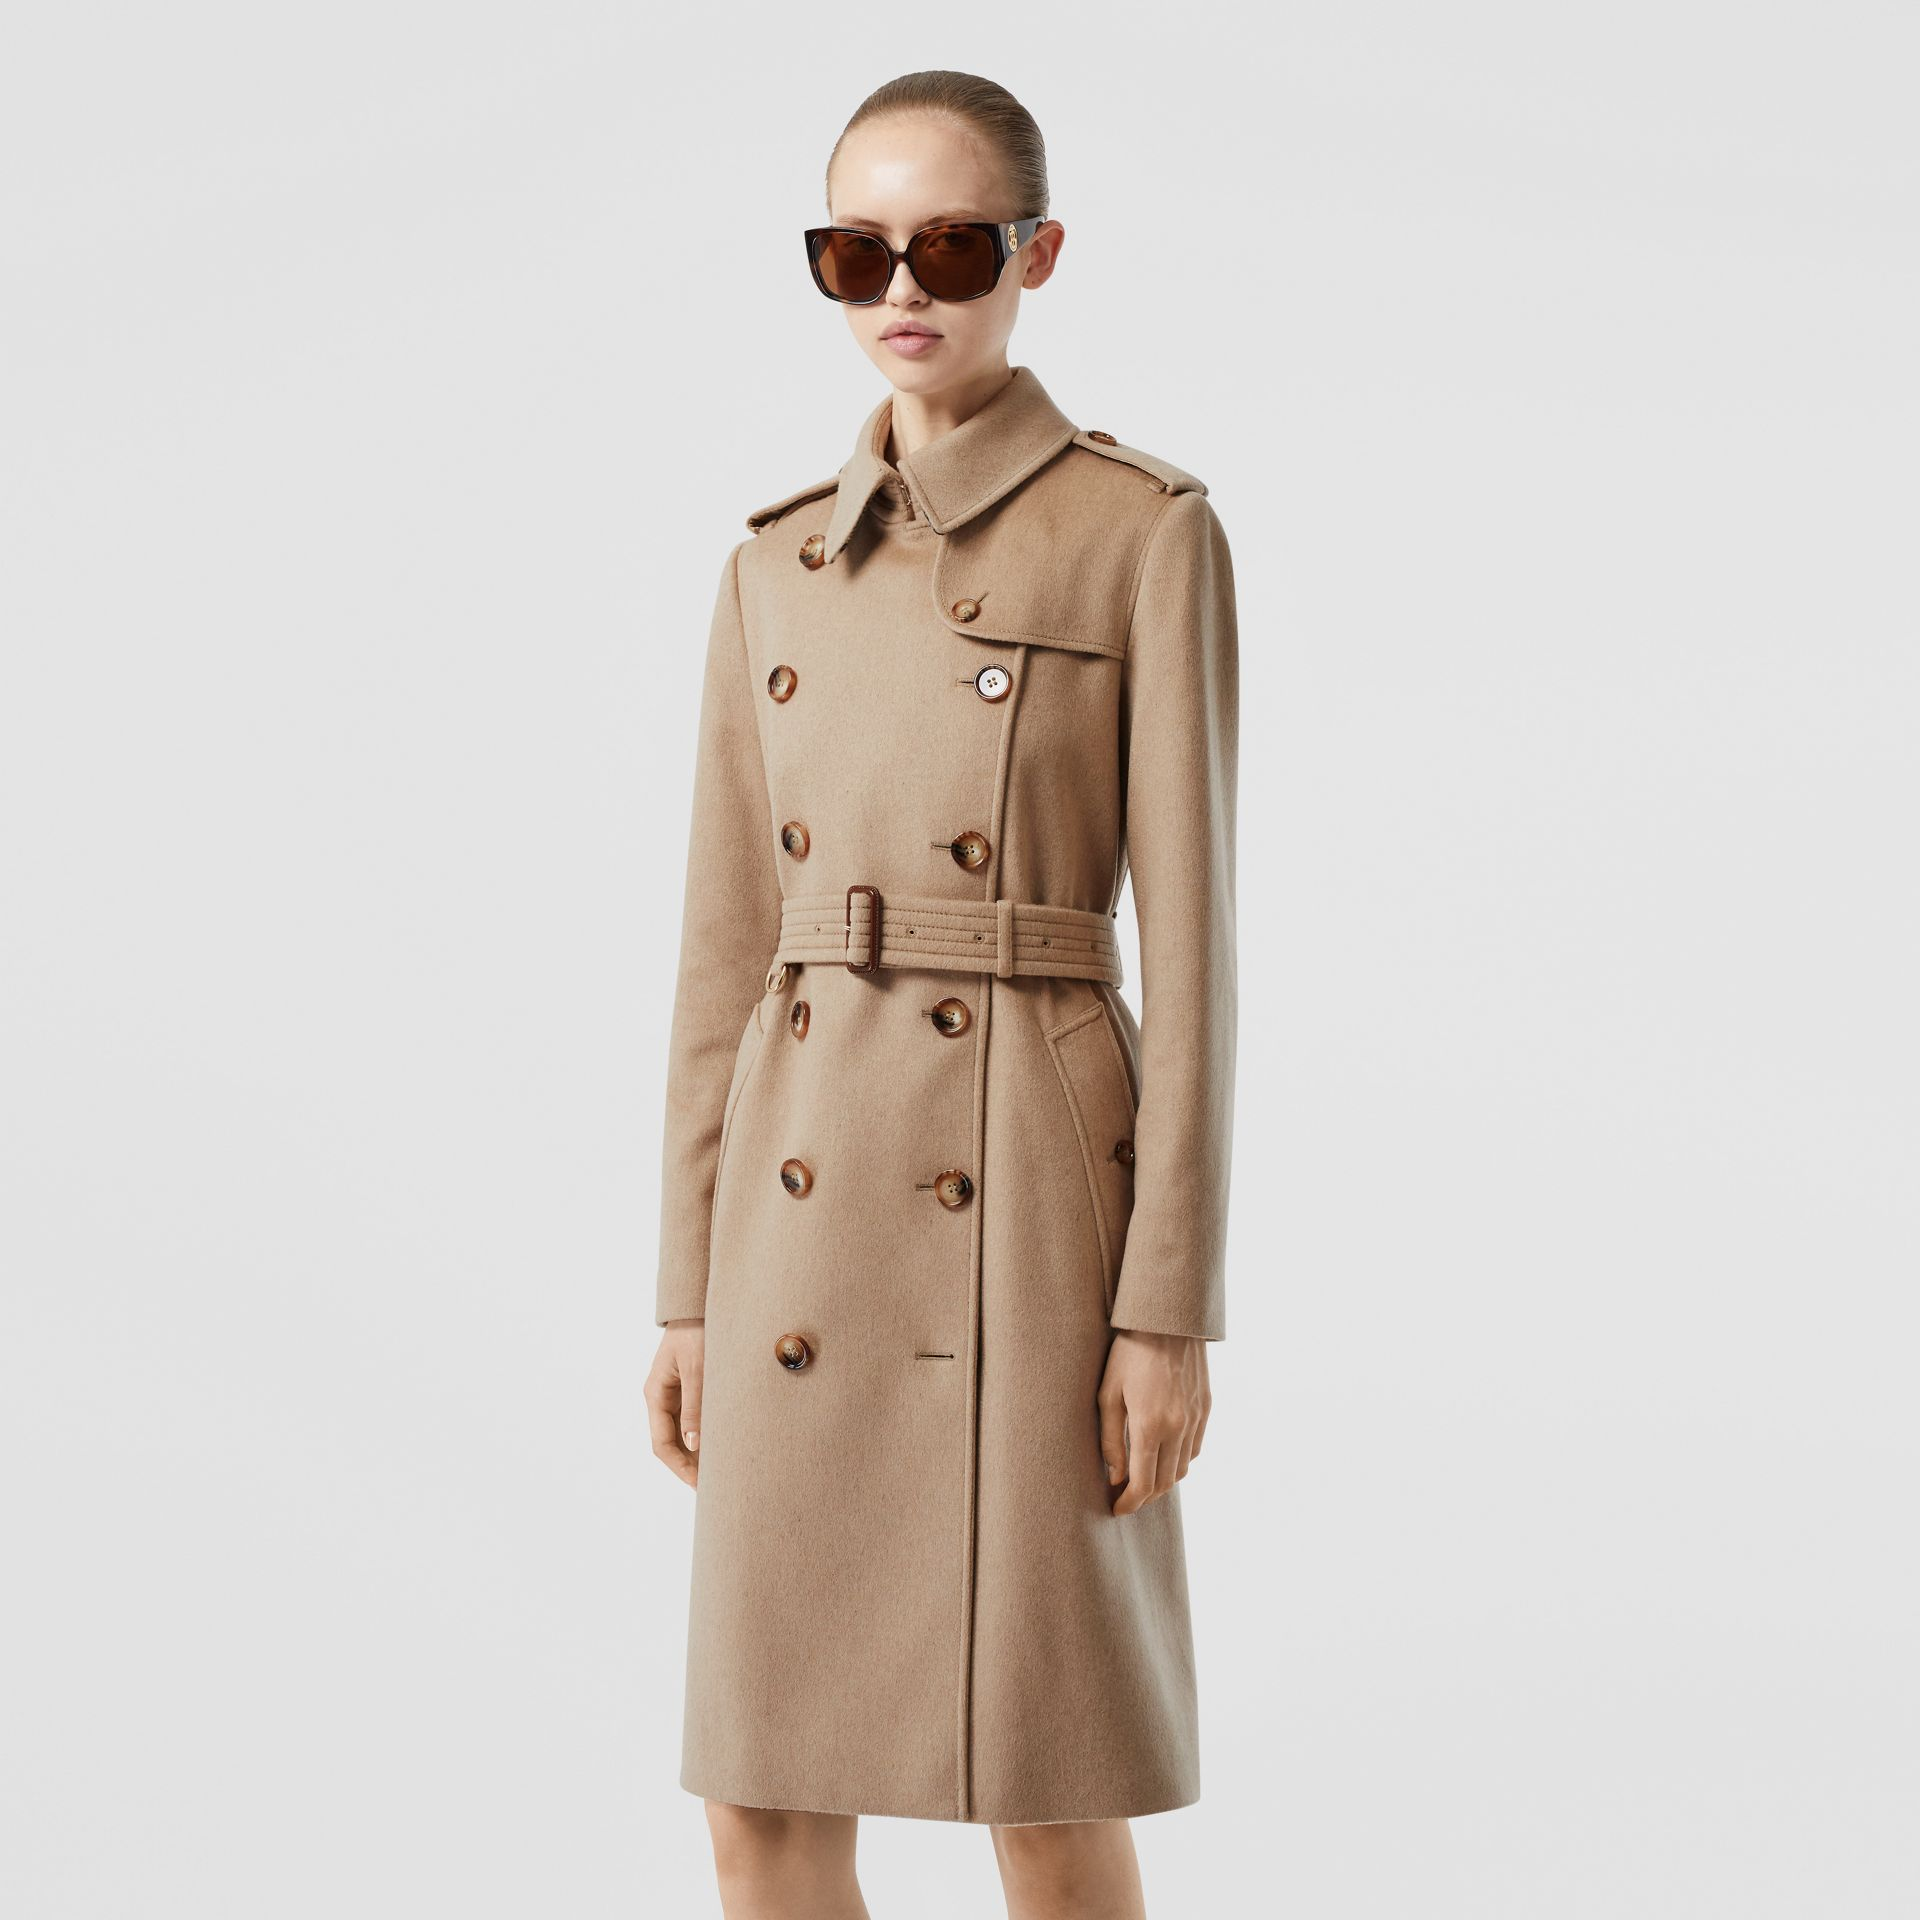 Cashmere Trench Coat in Camel - Women | Burberry Australia - gallery image 6